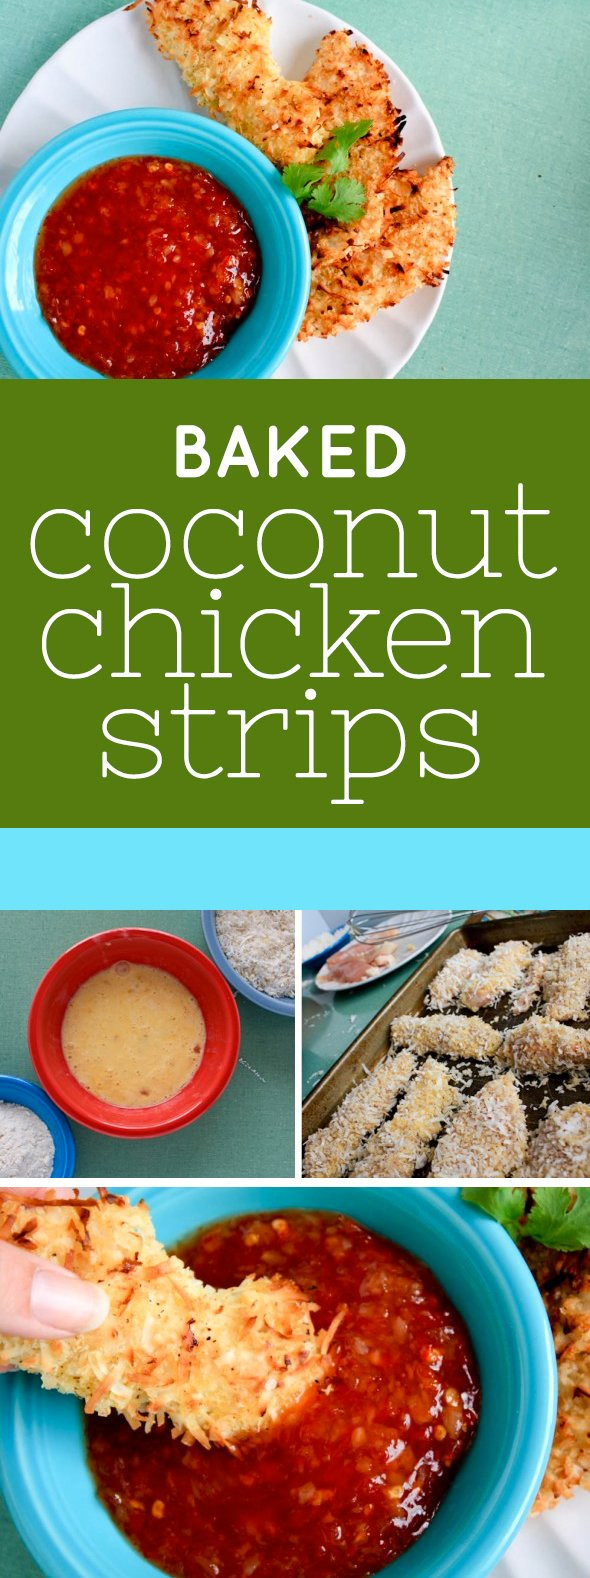 Baked Coconut Chicken  Baked Coconut Chicken Strips